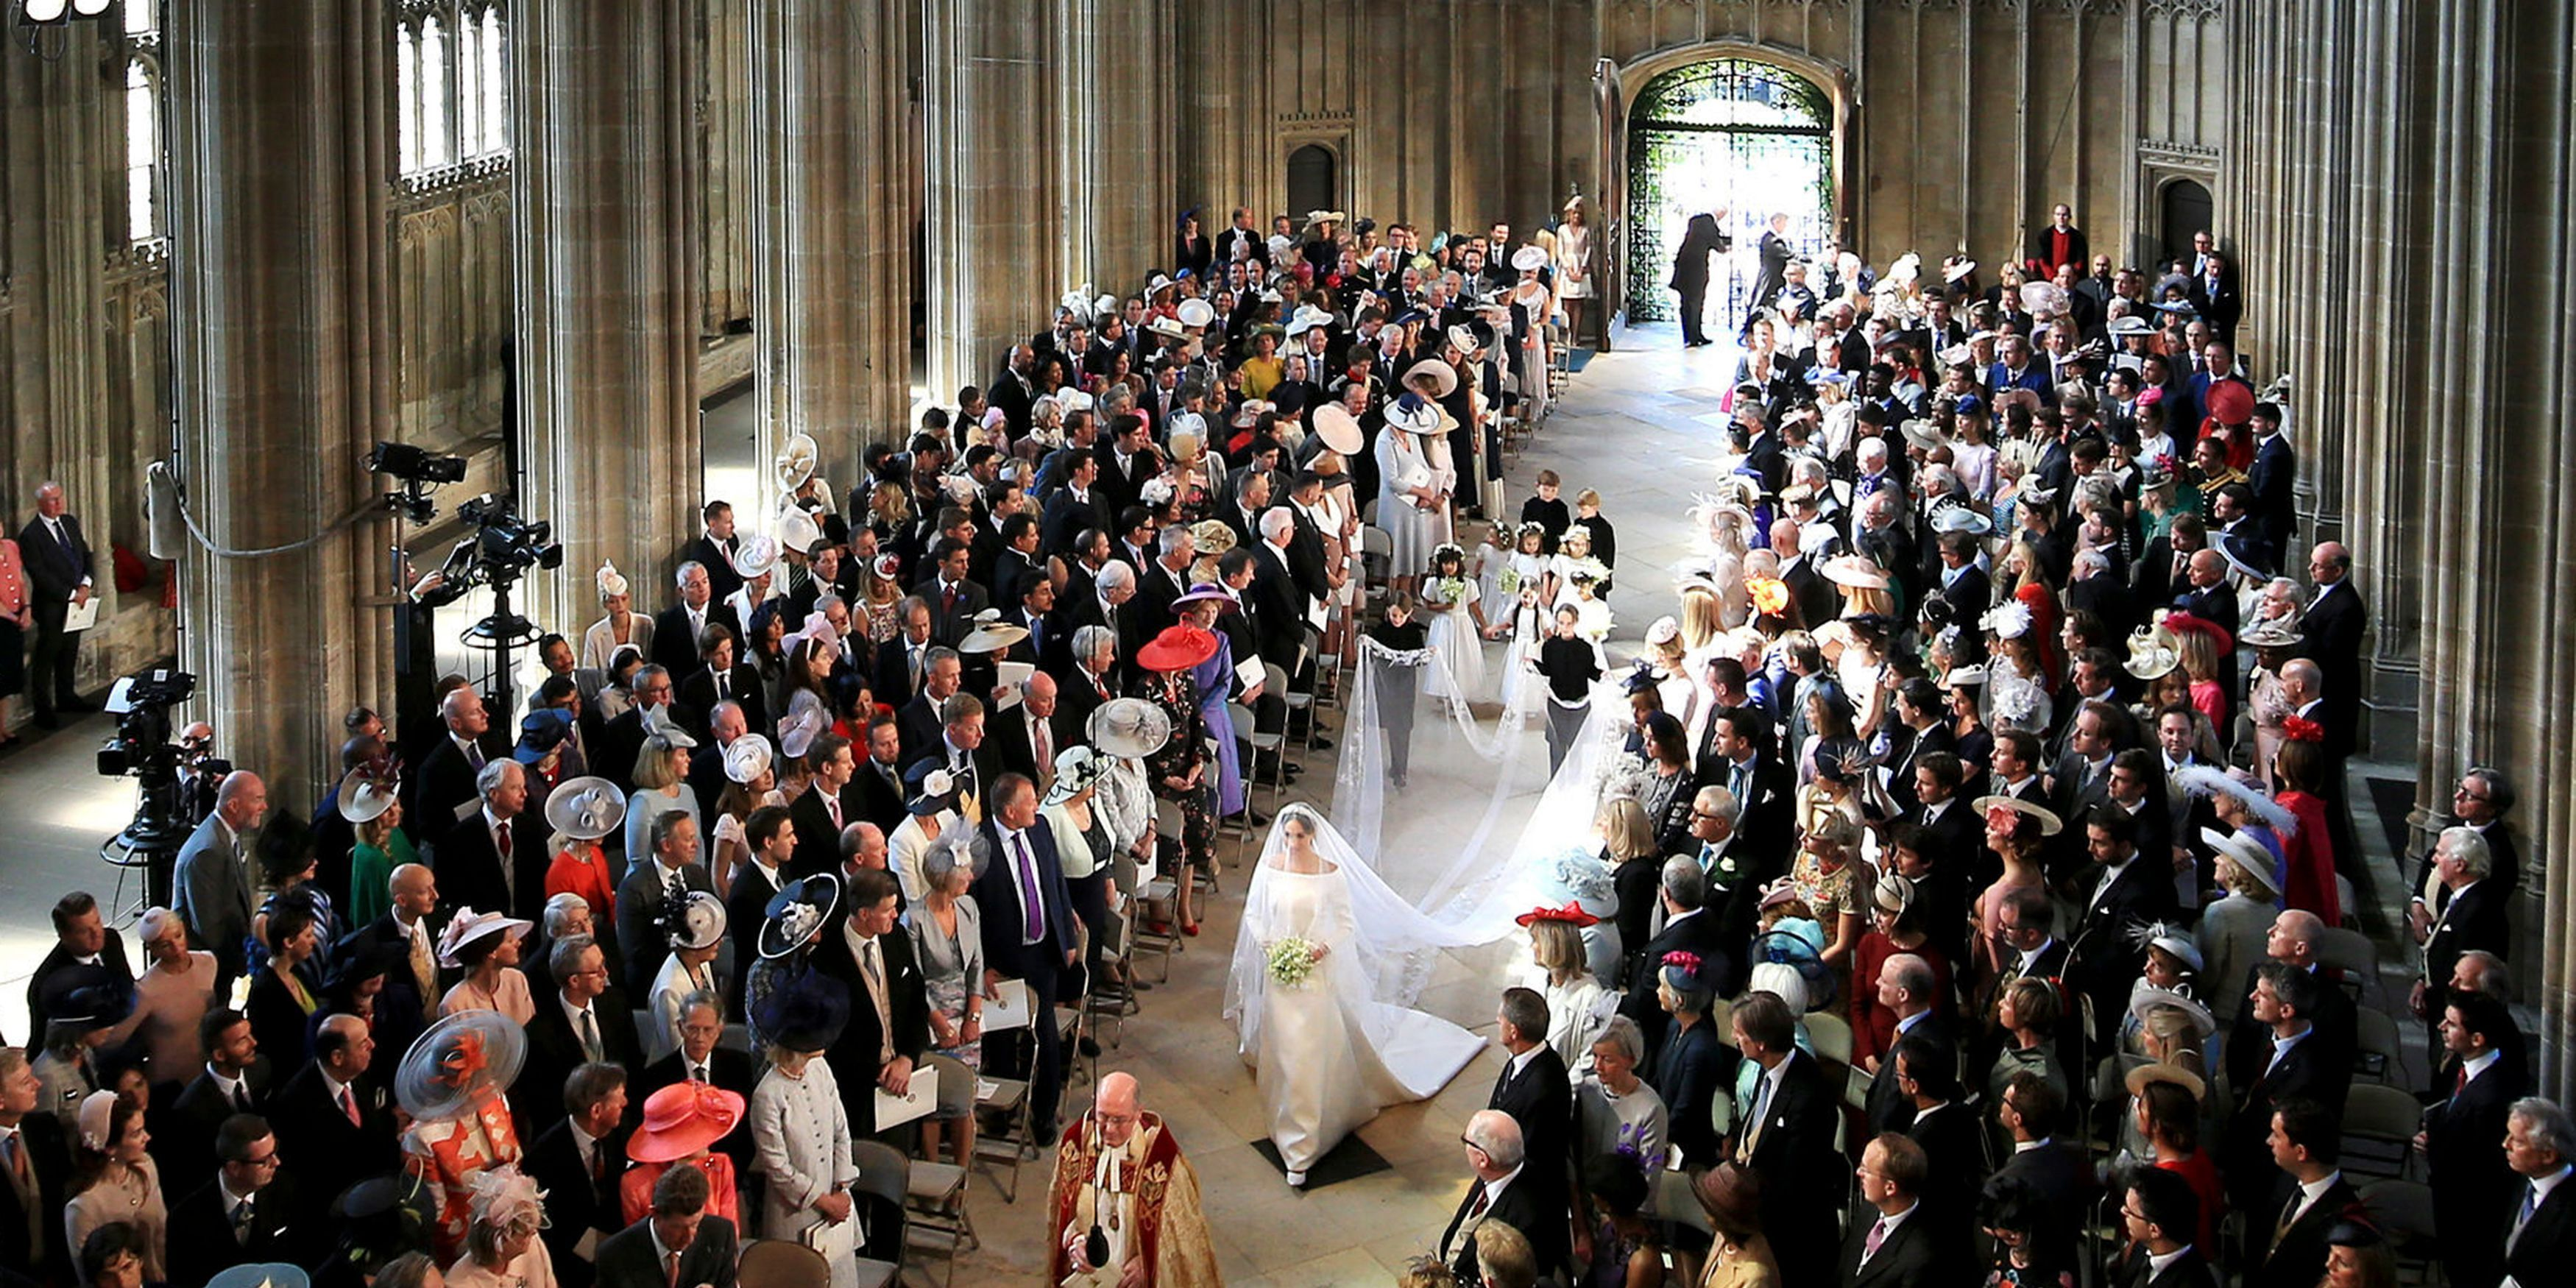 See Prince Harry and Meghan Markle's Royal Wedding Bridal Procession